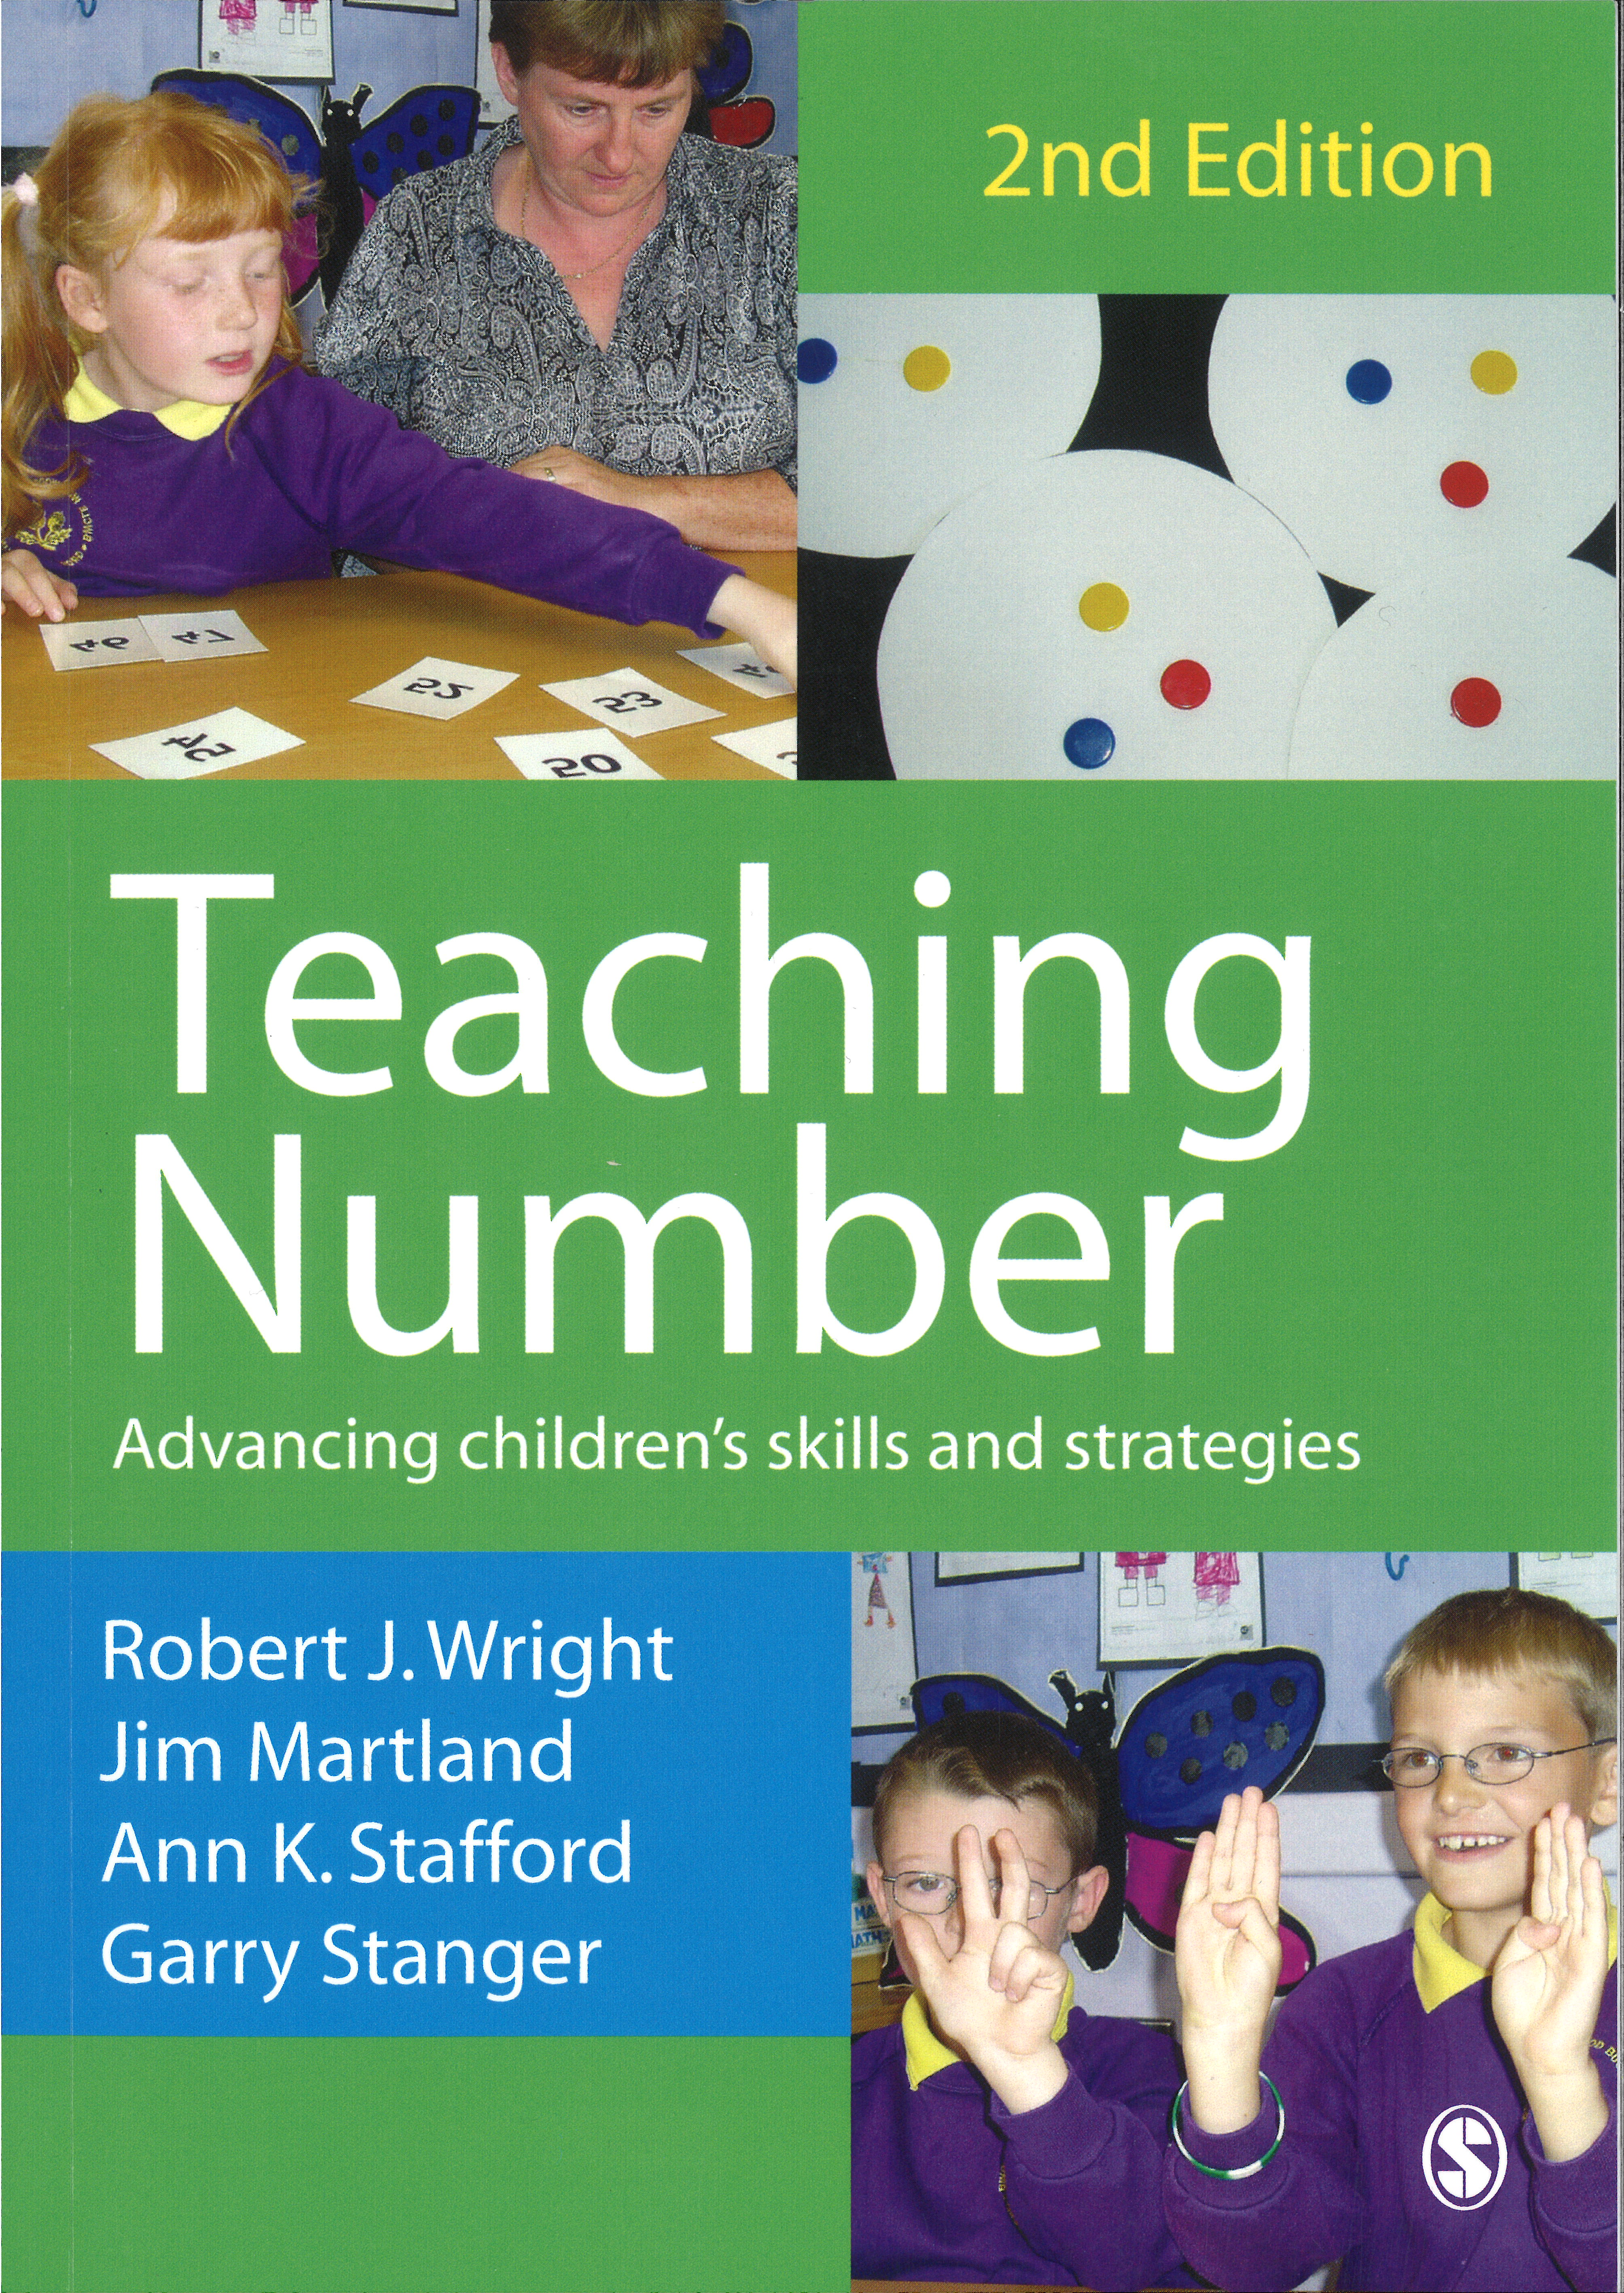 Teaching Number: Advancing Children's Skills and Strategies 2nd Edition